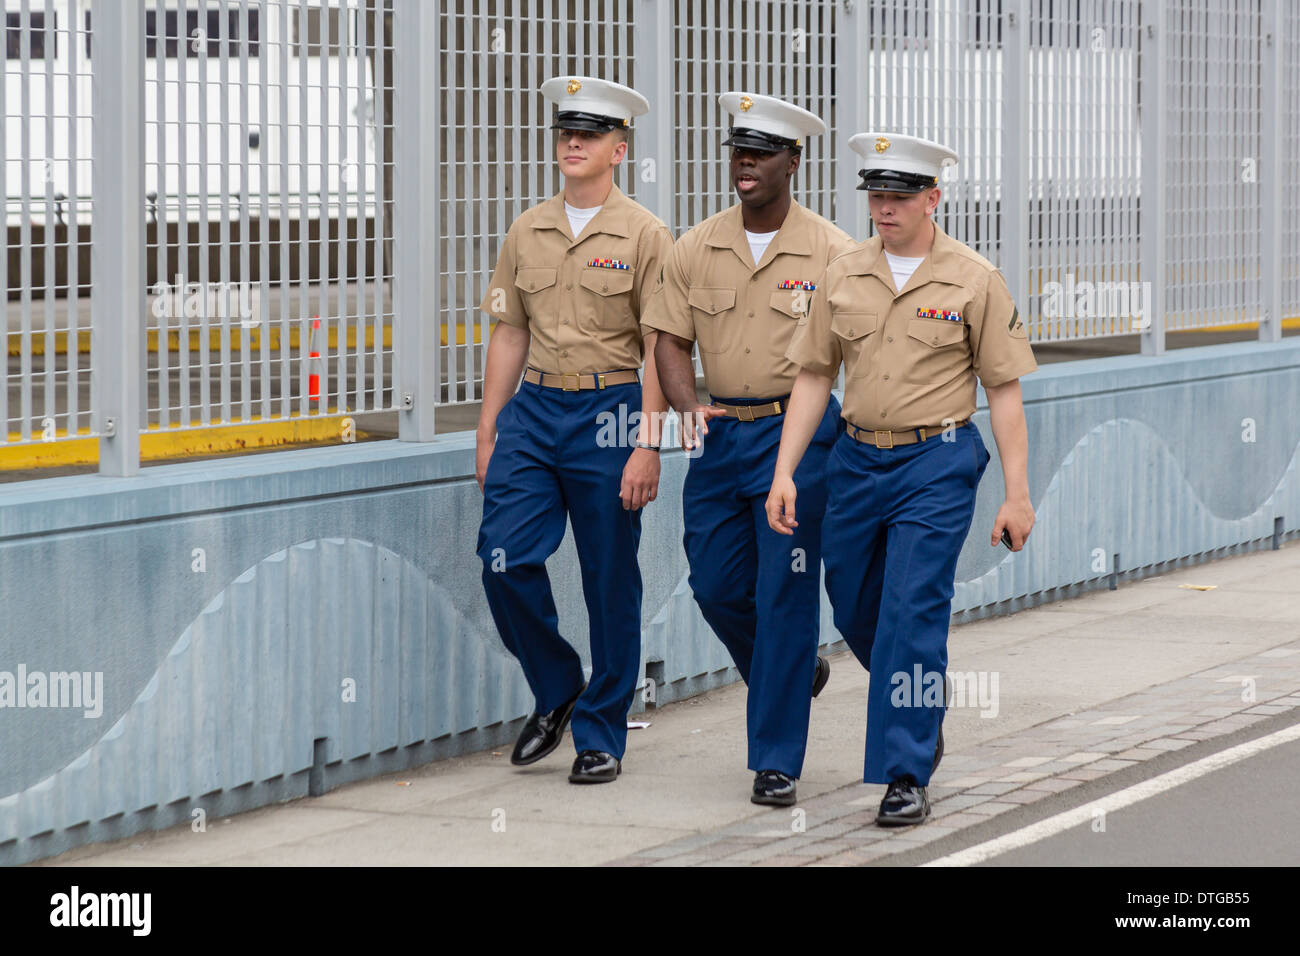 United States Lance Corporals Marines walk in New York City during the Fleet Week celebration. - Stock Image